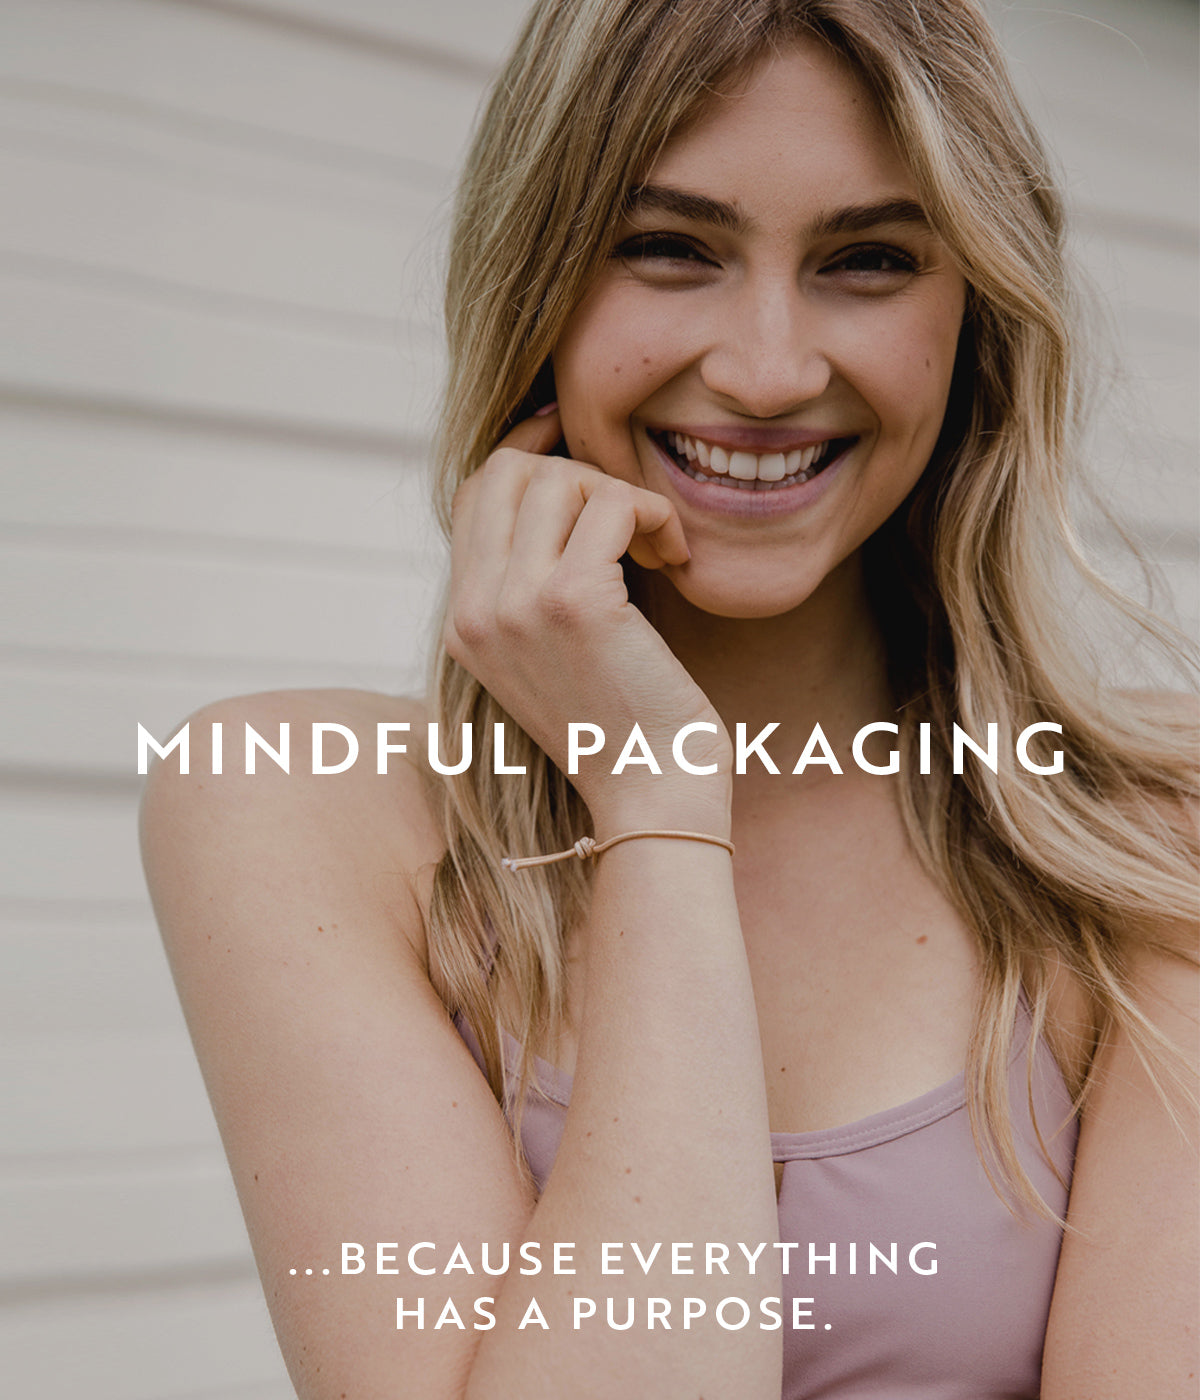 MINDFUL PACKAGING